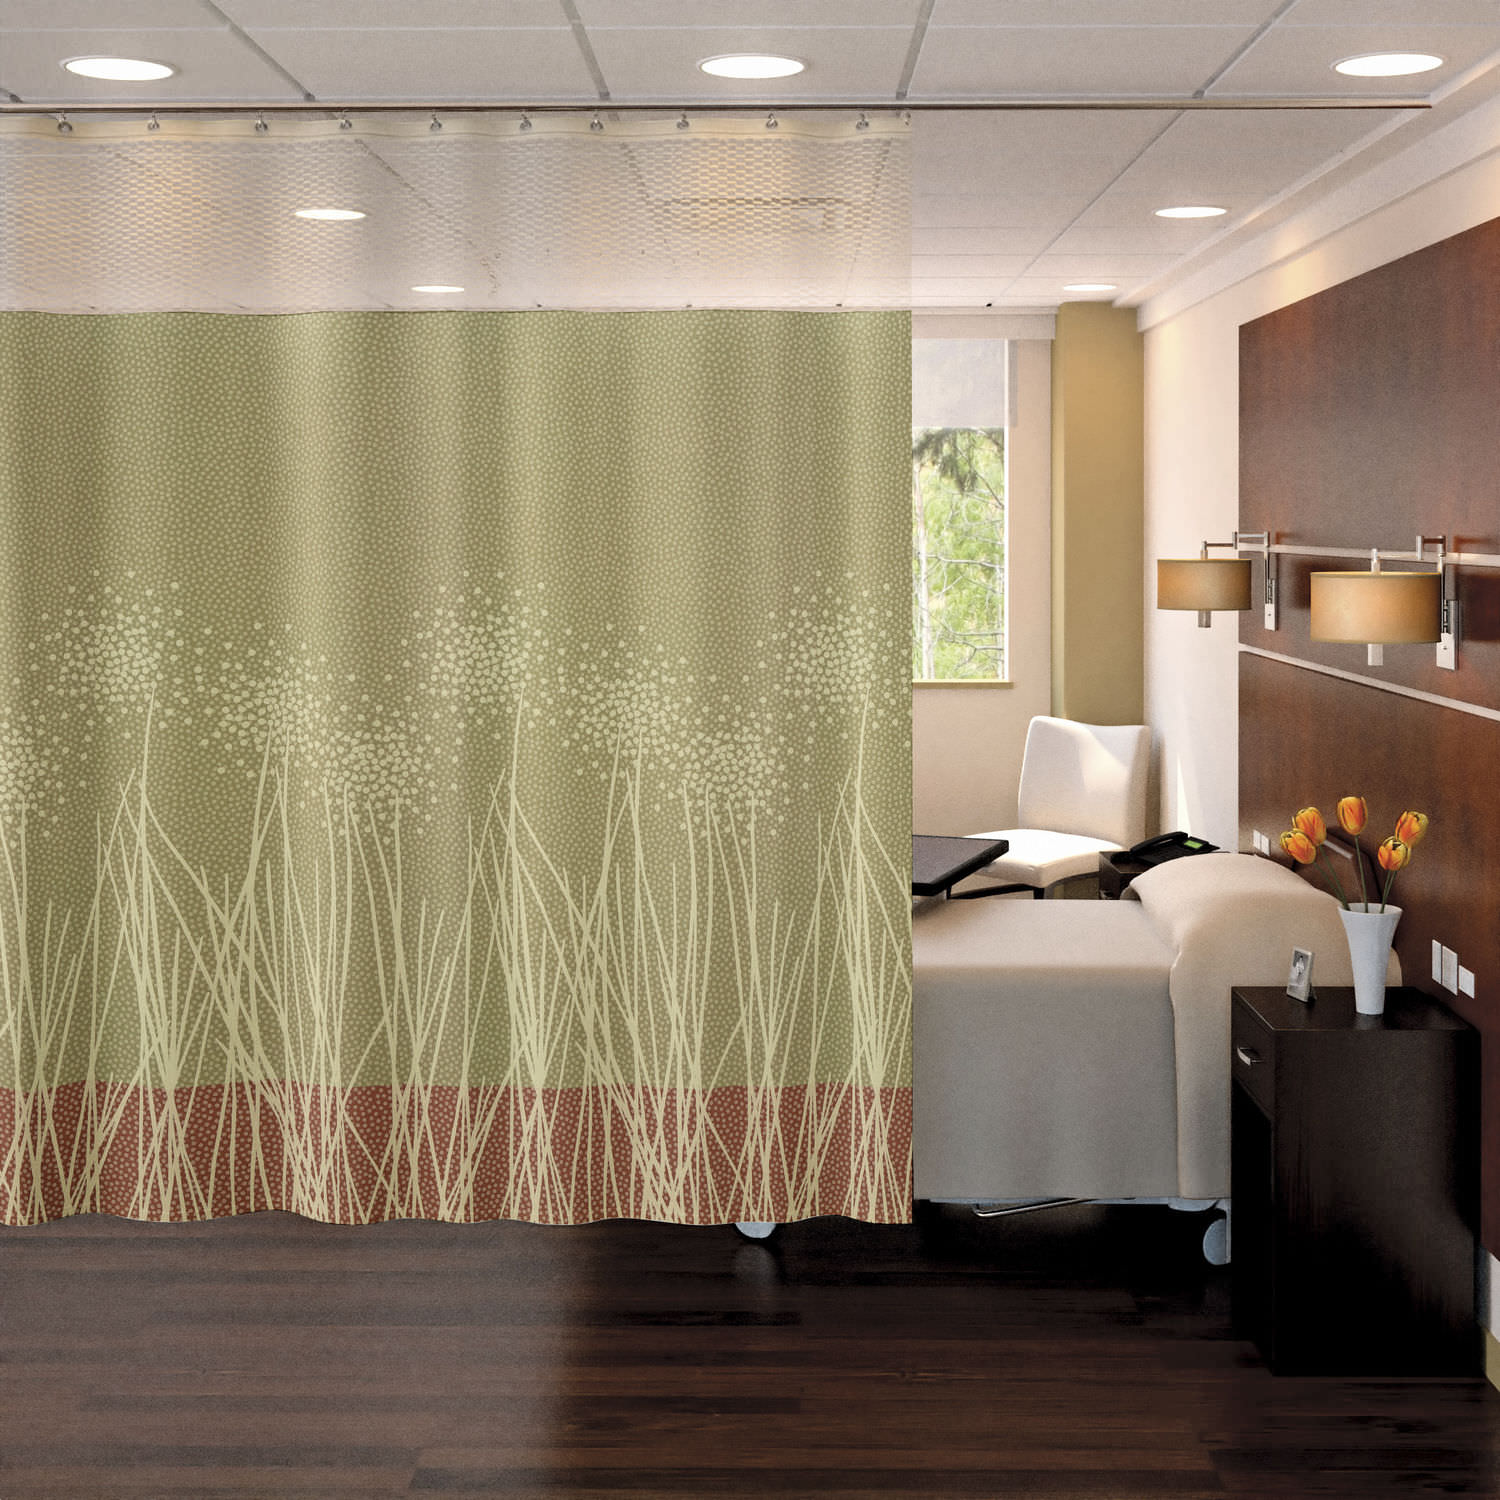 hospitalk sydney picture mounthospital shower curtain hospital hardwarehospital net curtains tracks gopelling ceiling